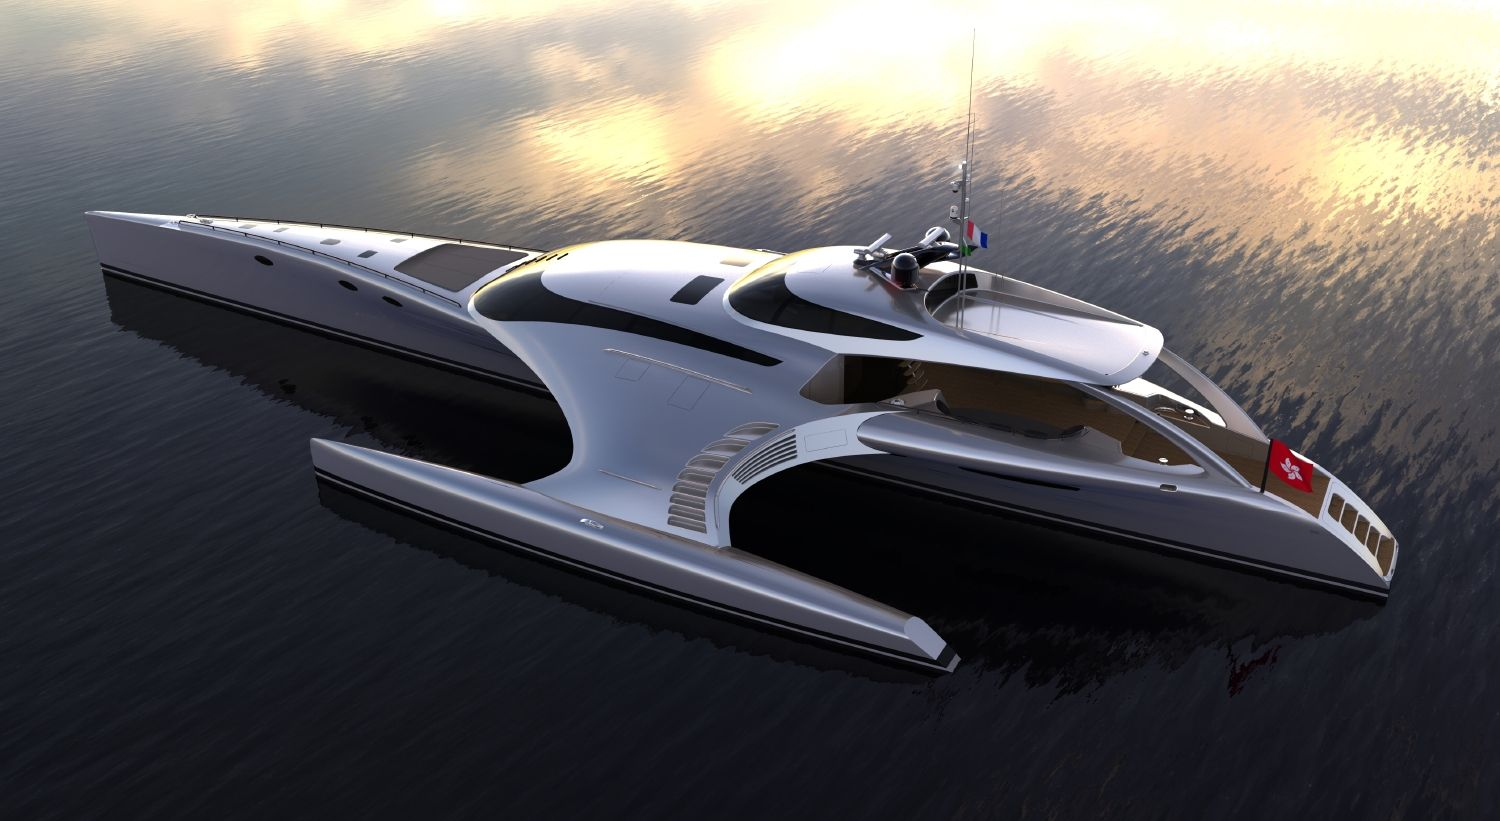 Adastra Luxury Yacht Picture Hd Wallpaper With Images Yacht